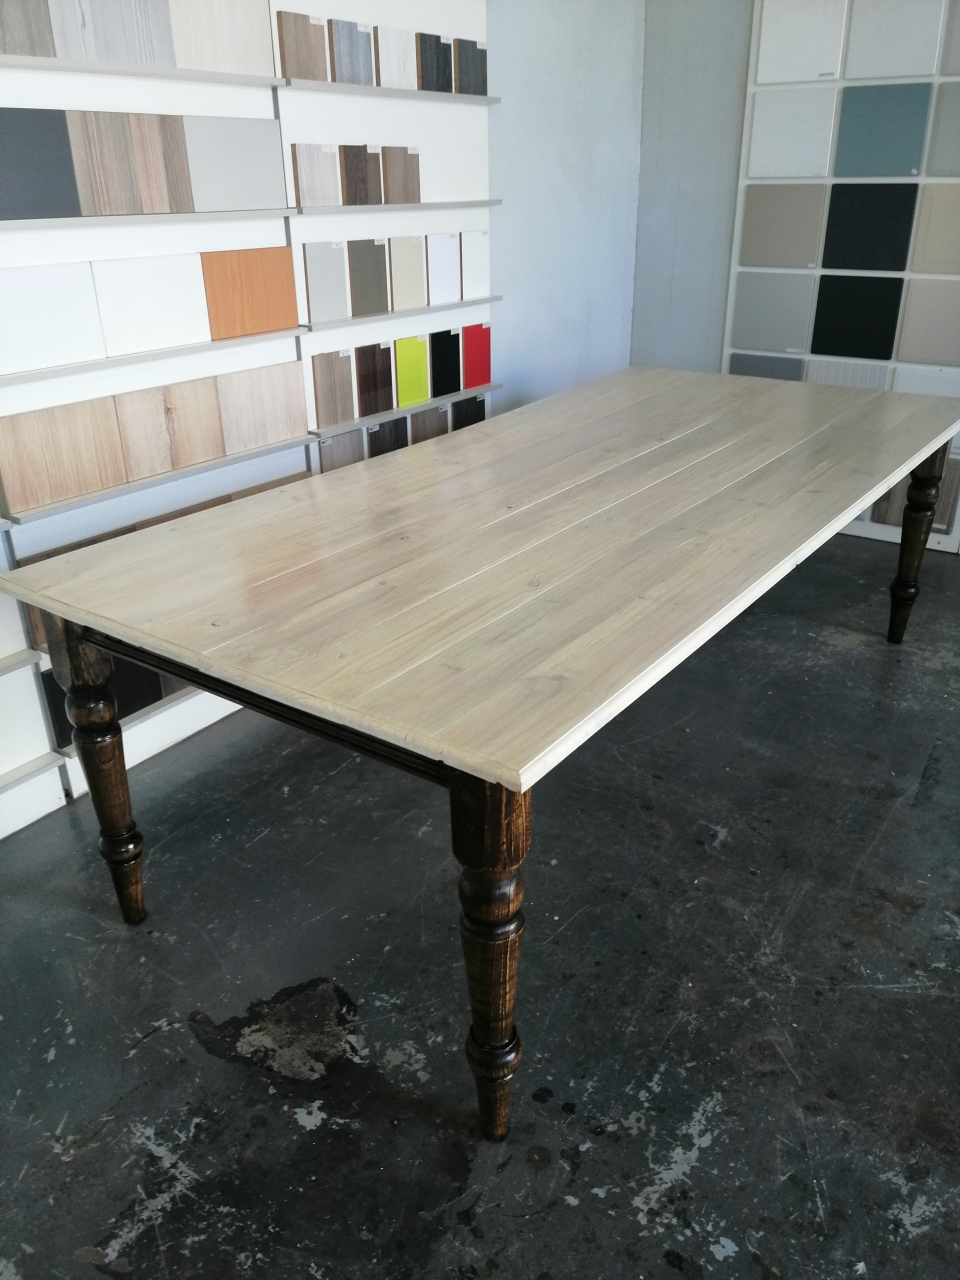 DINING ROOM OR LAPA TABLE-8 SEATER ASHWOOD LEGS AND WASHED PINE YOP